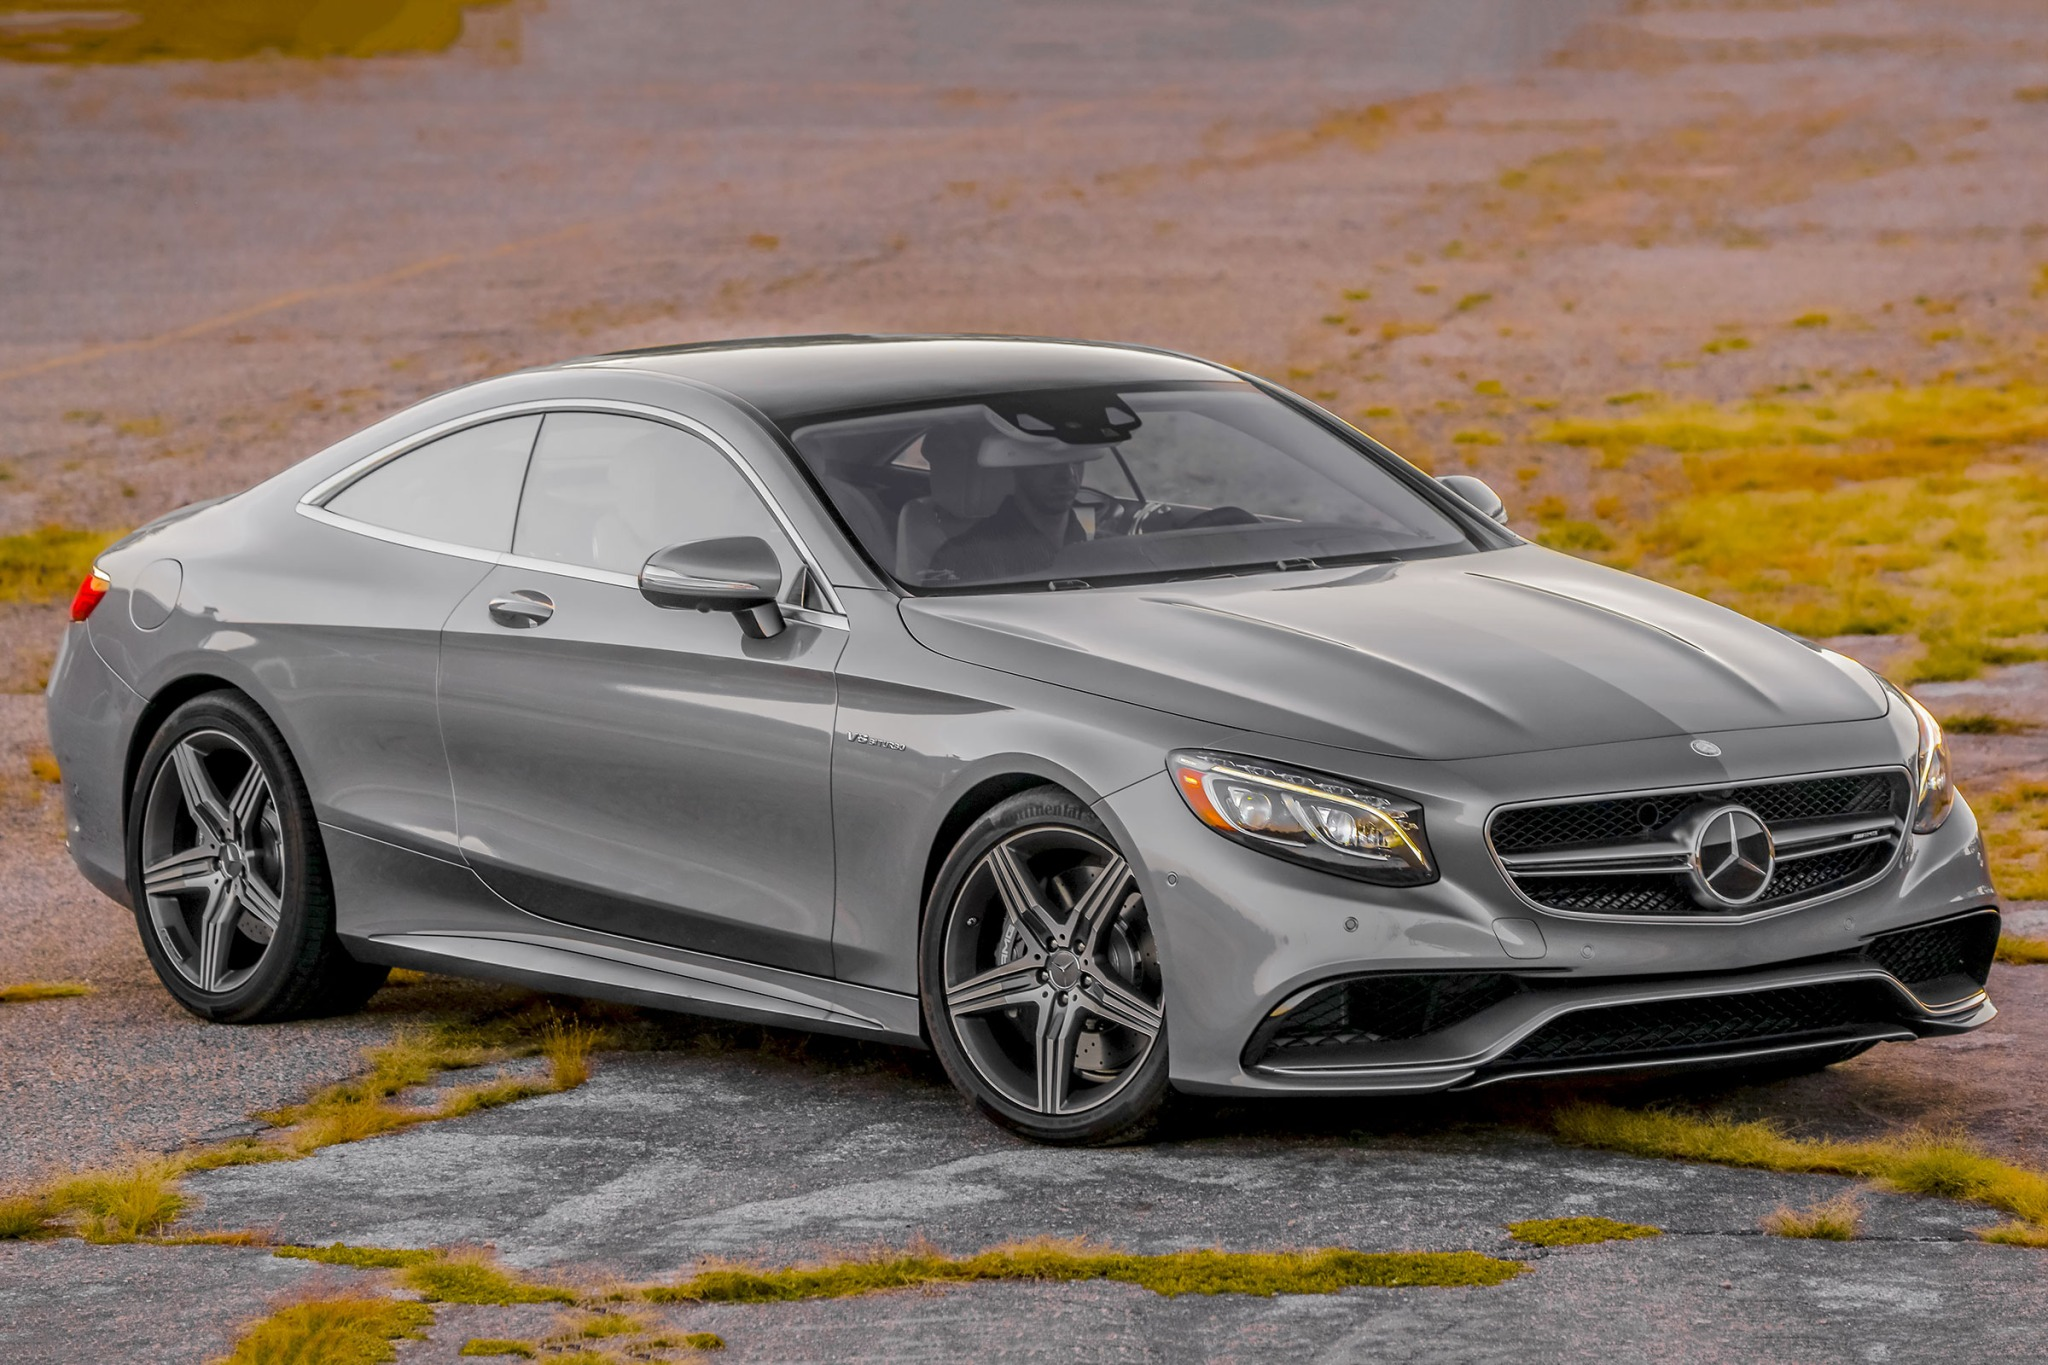 2017 mercedes benz s63 amg coupe car photos catalog 2018 for 2017 mercedes benz s